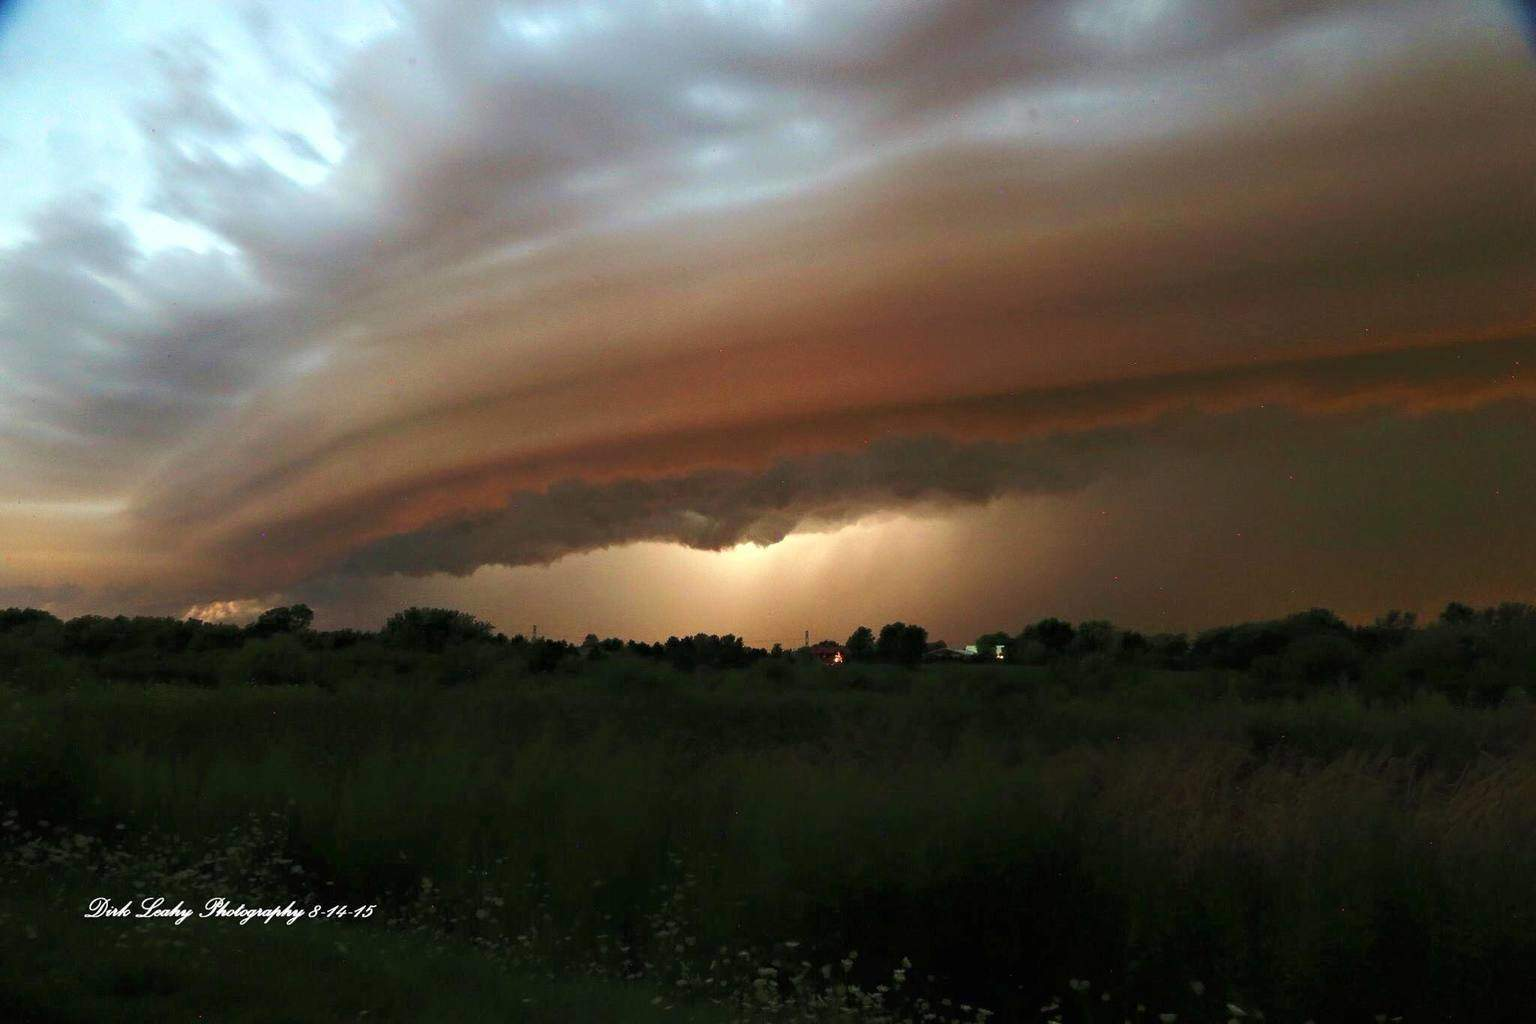 Here is my best shelf shot yet. This was taken from Wauconda, Il this evening as a strong set of storms was moving through this brought 50MPH wind gusts, hail and lots of lighting to Northern Illinois this evening where we had sporadic power outages in the area from the strong winds.